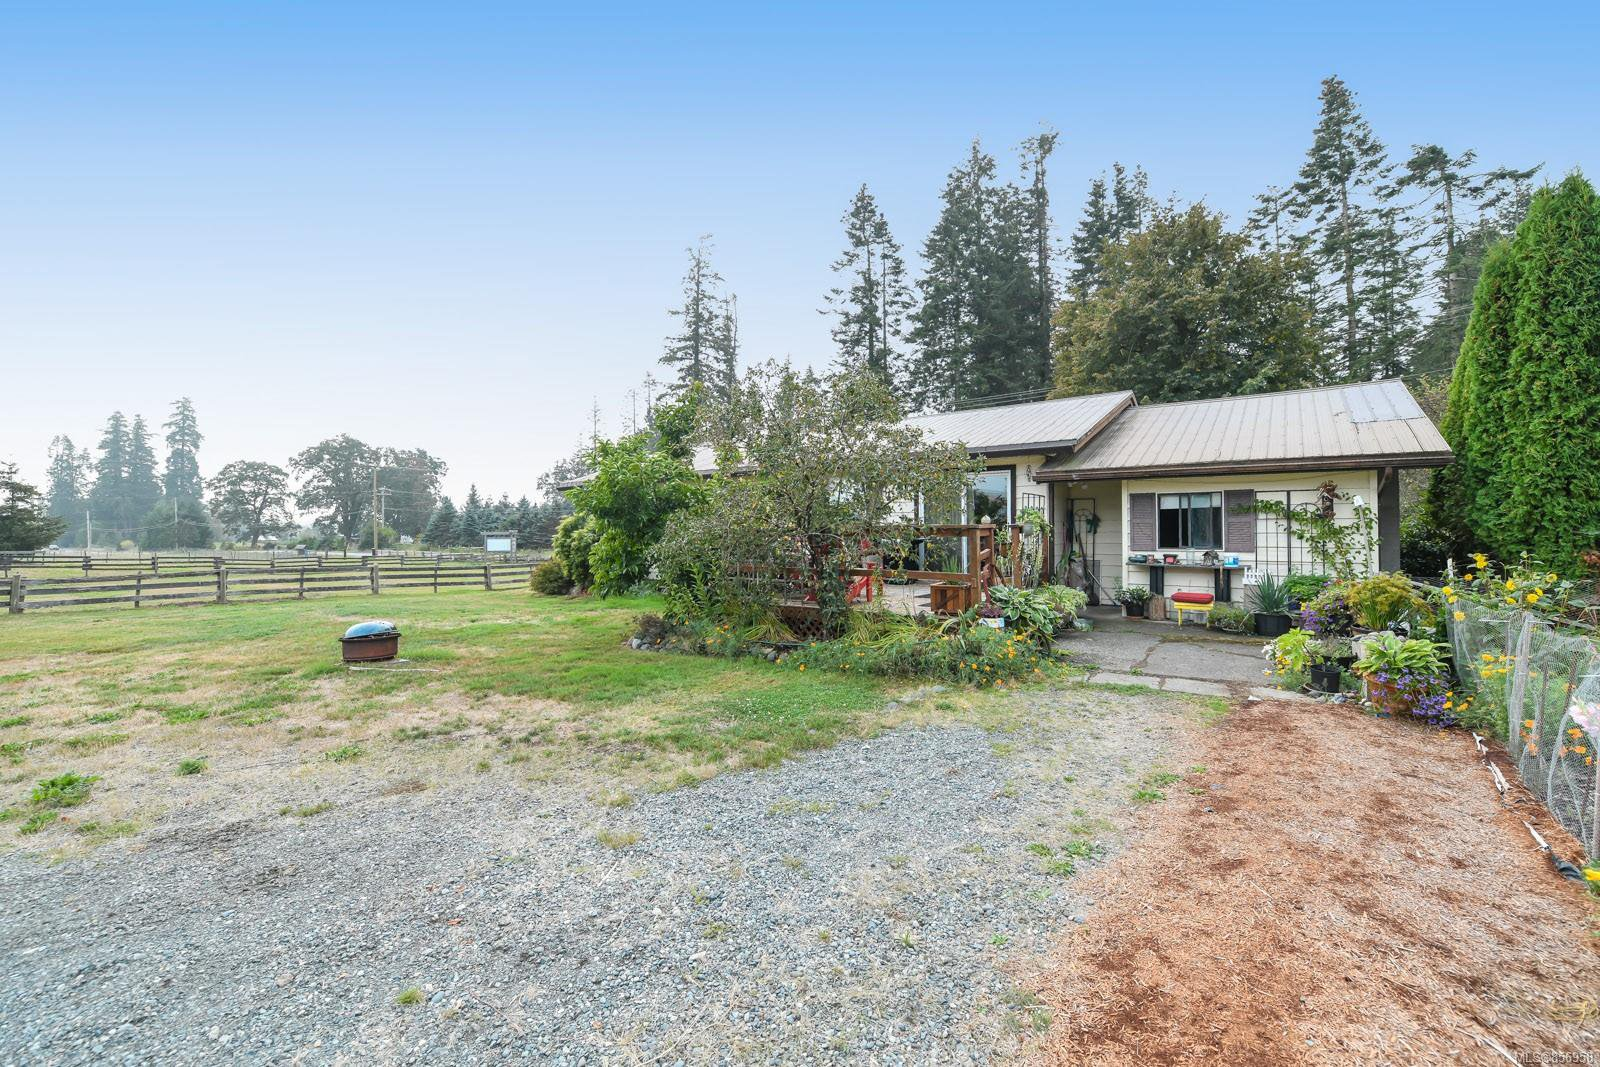 Main Photo: 5346 Headquarters Rd in : CV Courtenay North House for sale (Comox Valley)  : MLS®# 856958